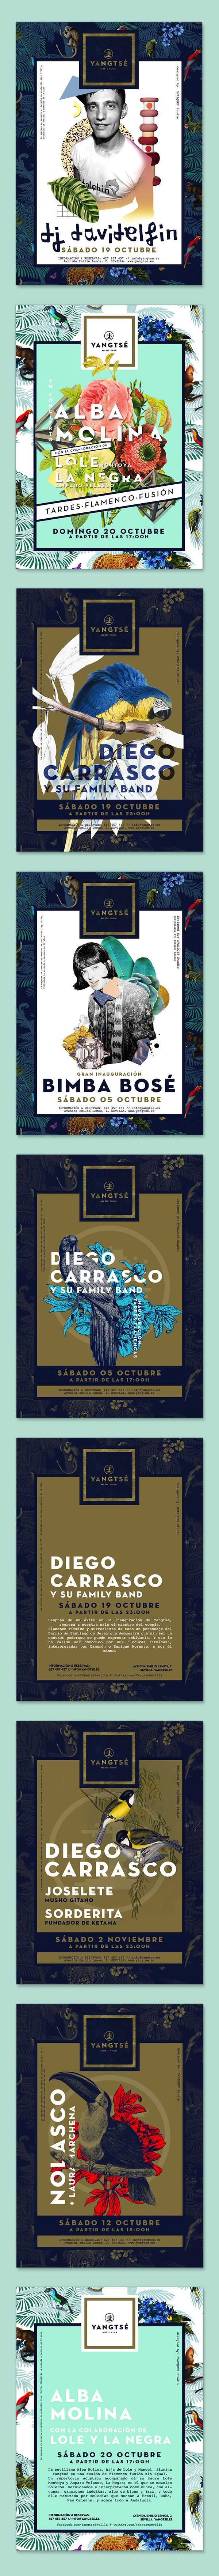 Yangtsé Music Room flyers by DVAZQUEZ Studio | http://dvazquez.net